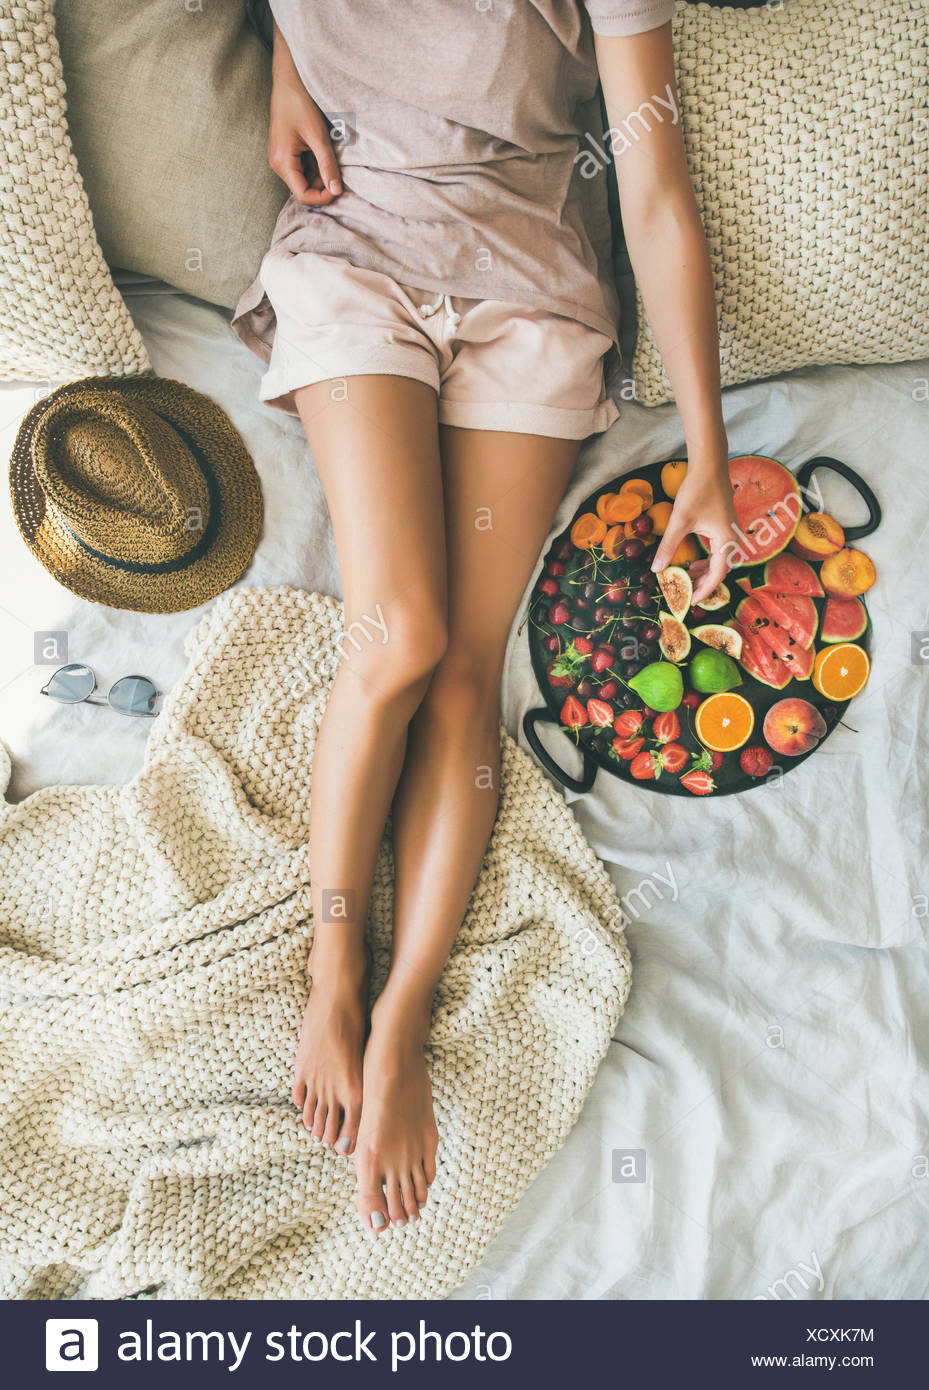 Summer healthy raw vegan clean eating breakfast in bed concept. Young girl wearing pastel colored home clothes taking fruit from tray full of fresh se - Stock Image